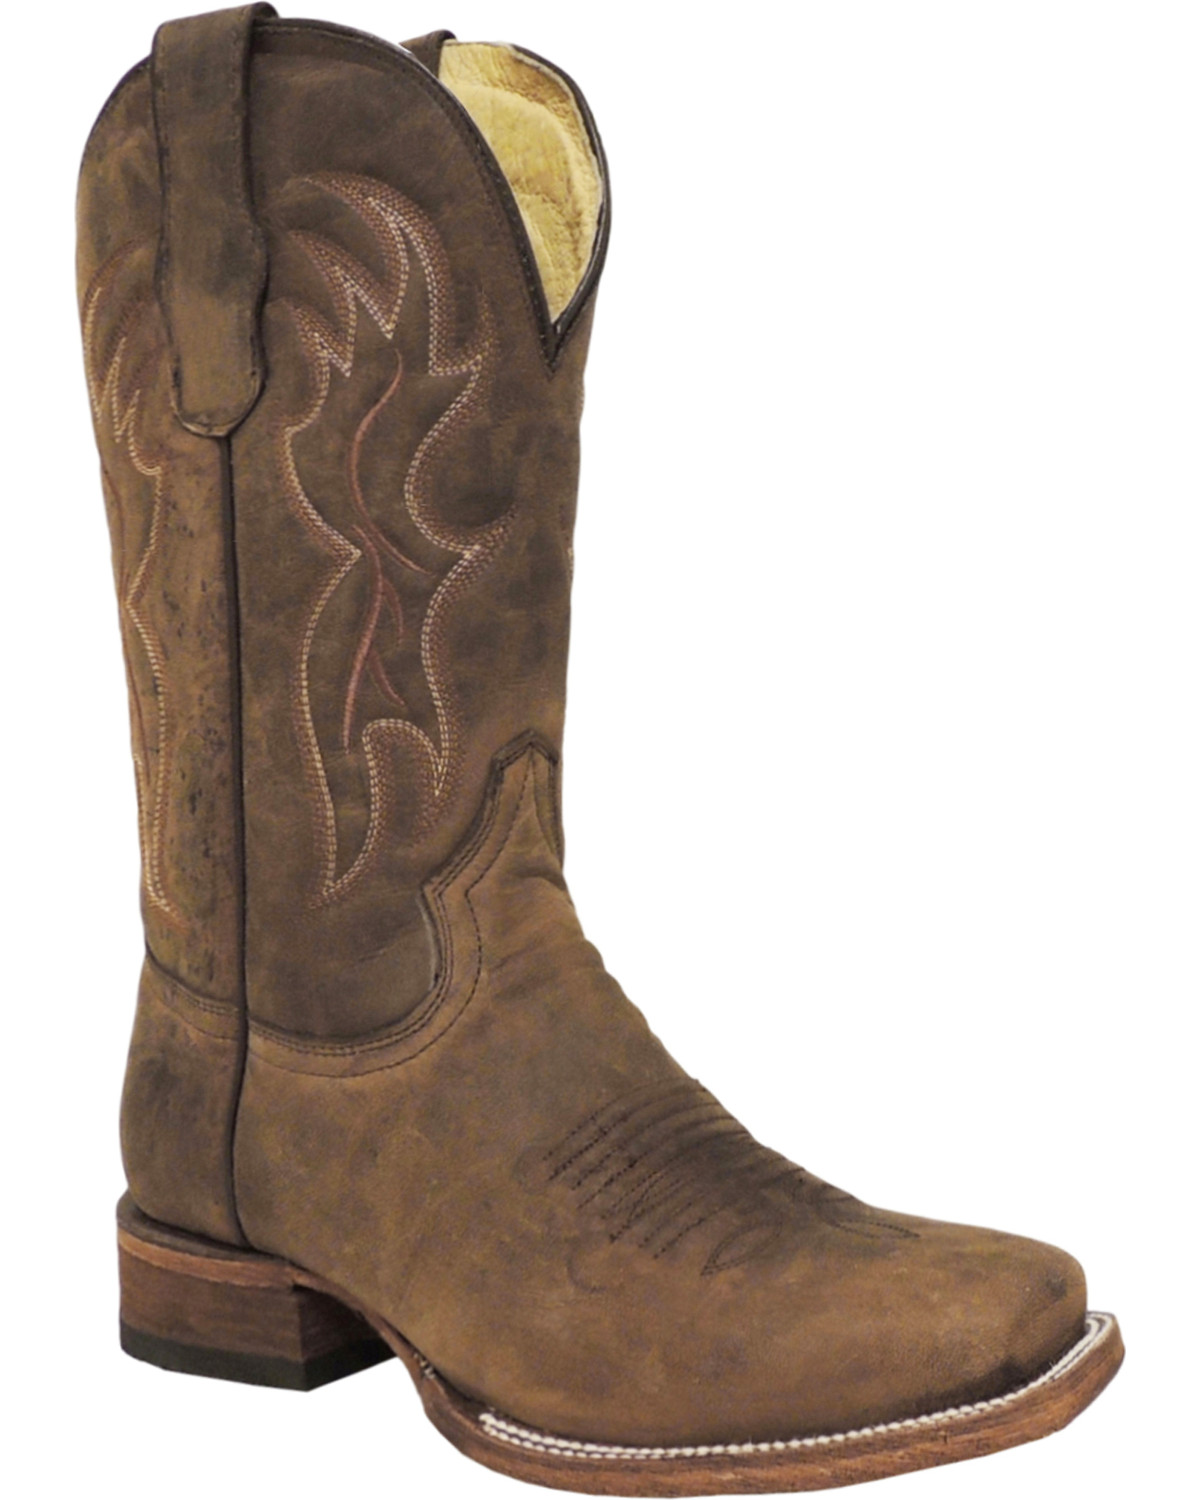 Circle G Women S Diamond Embroidered Cowgirl Boot Square: Circle G Men's Square Toe Western Boots